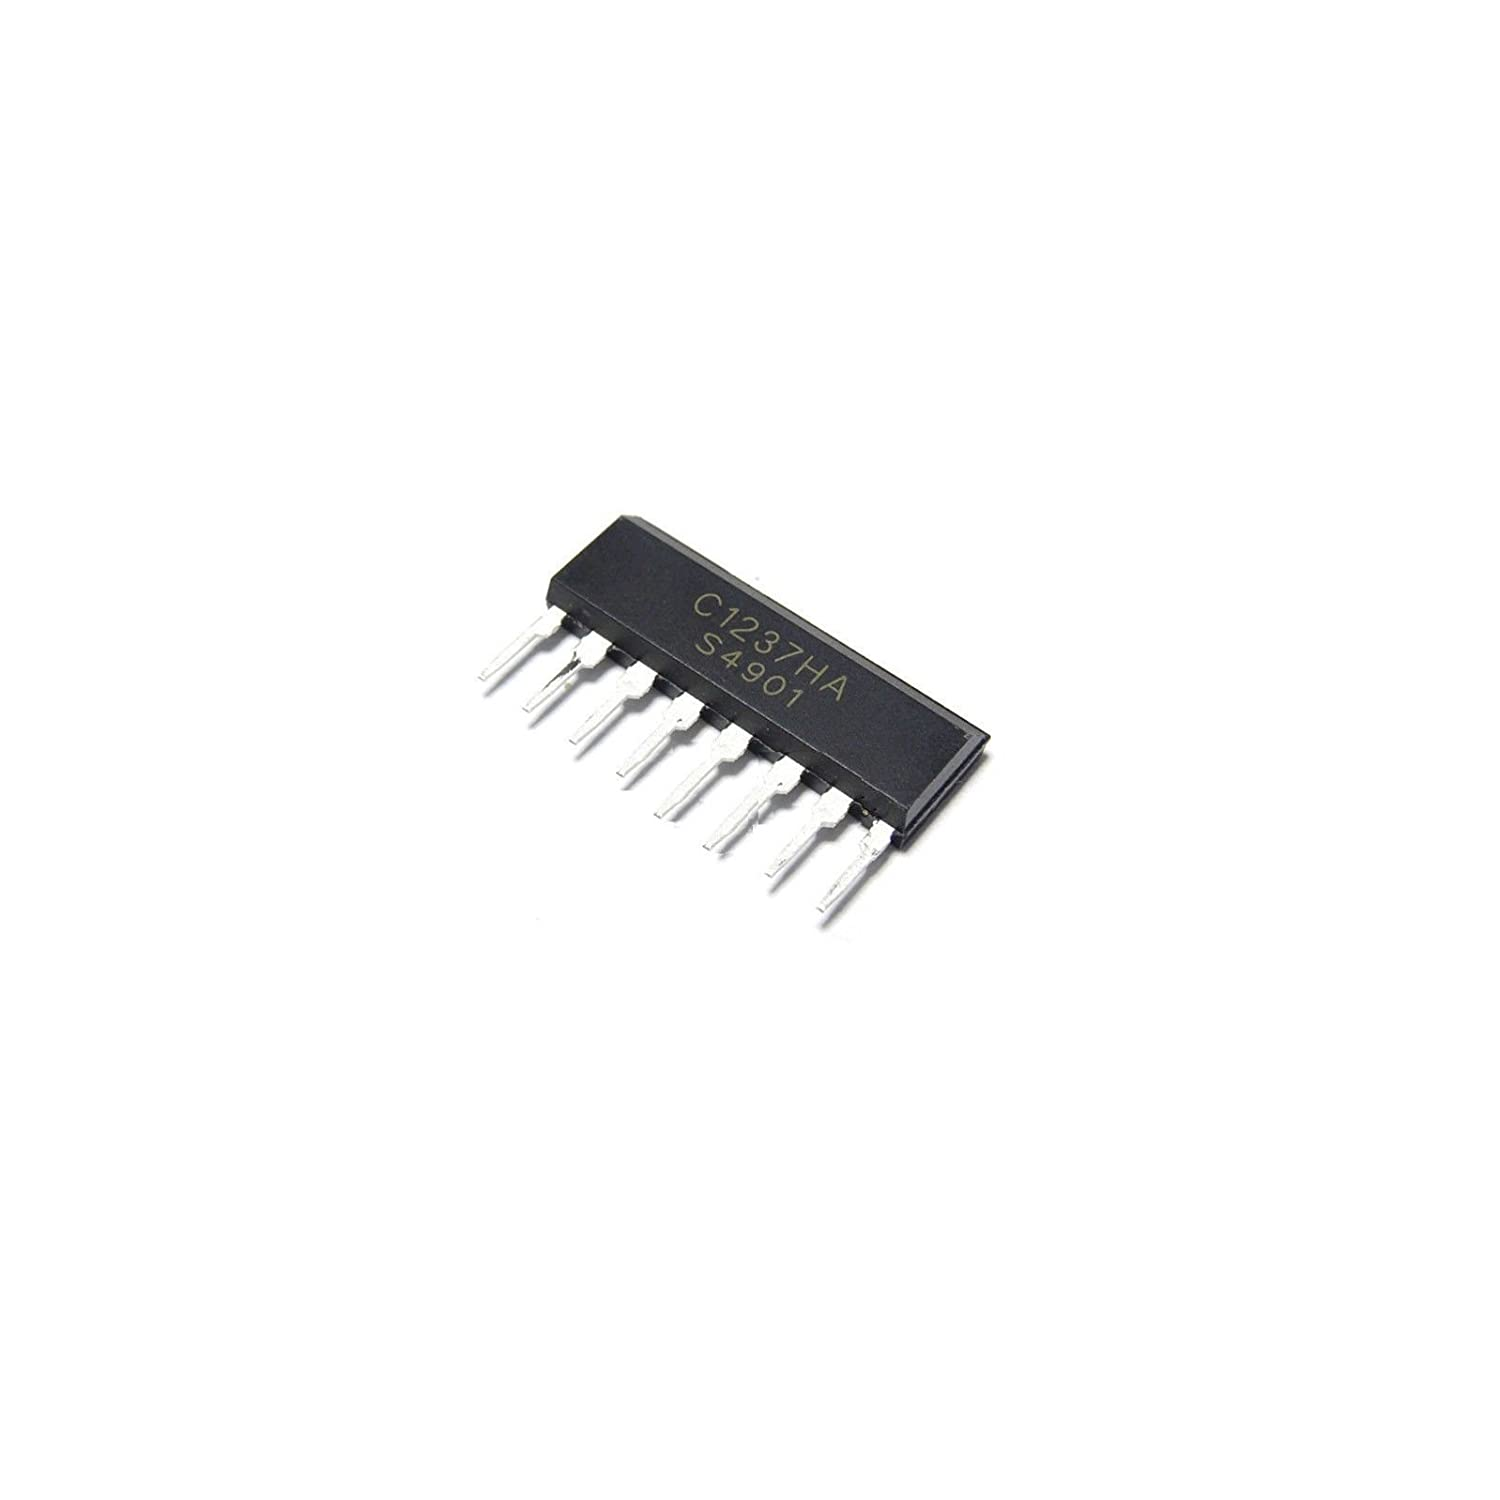 5pcs New Upc1237ha C1237ha Protector Ic For Stereo Power Amplifier Sip 8 1500w Schematic